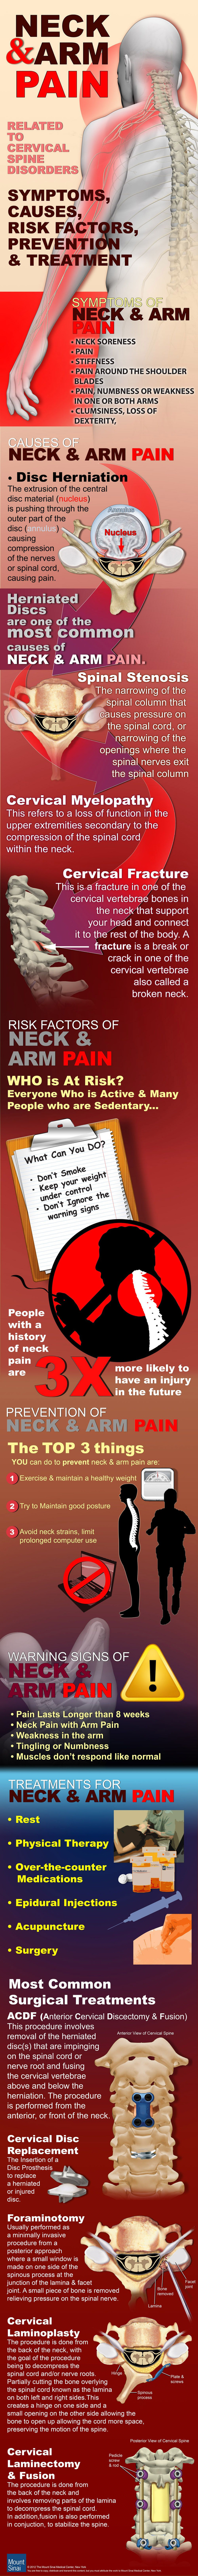 Neck and Arm Pain Infographic